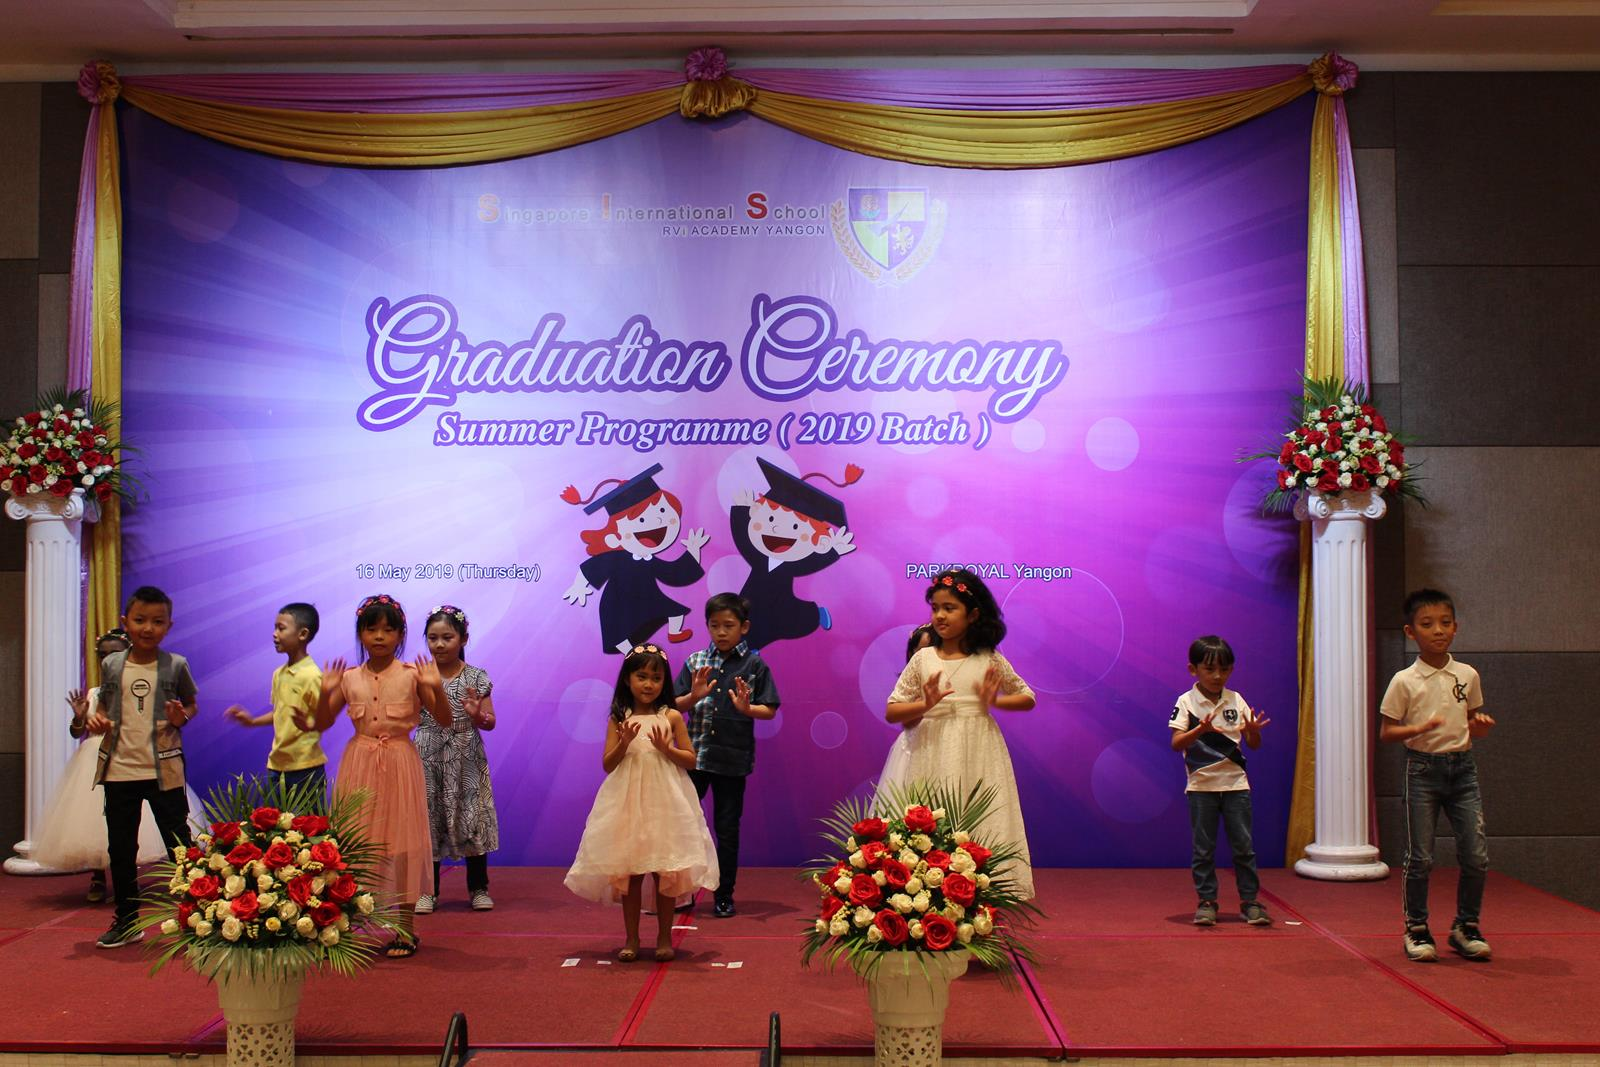 Graduation Ceremony of SIS Summer Programme 2019